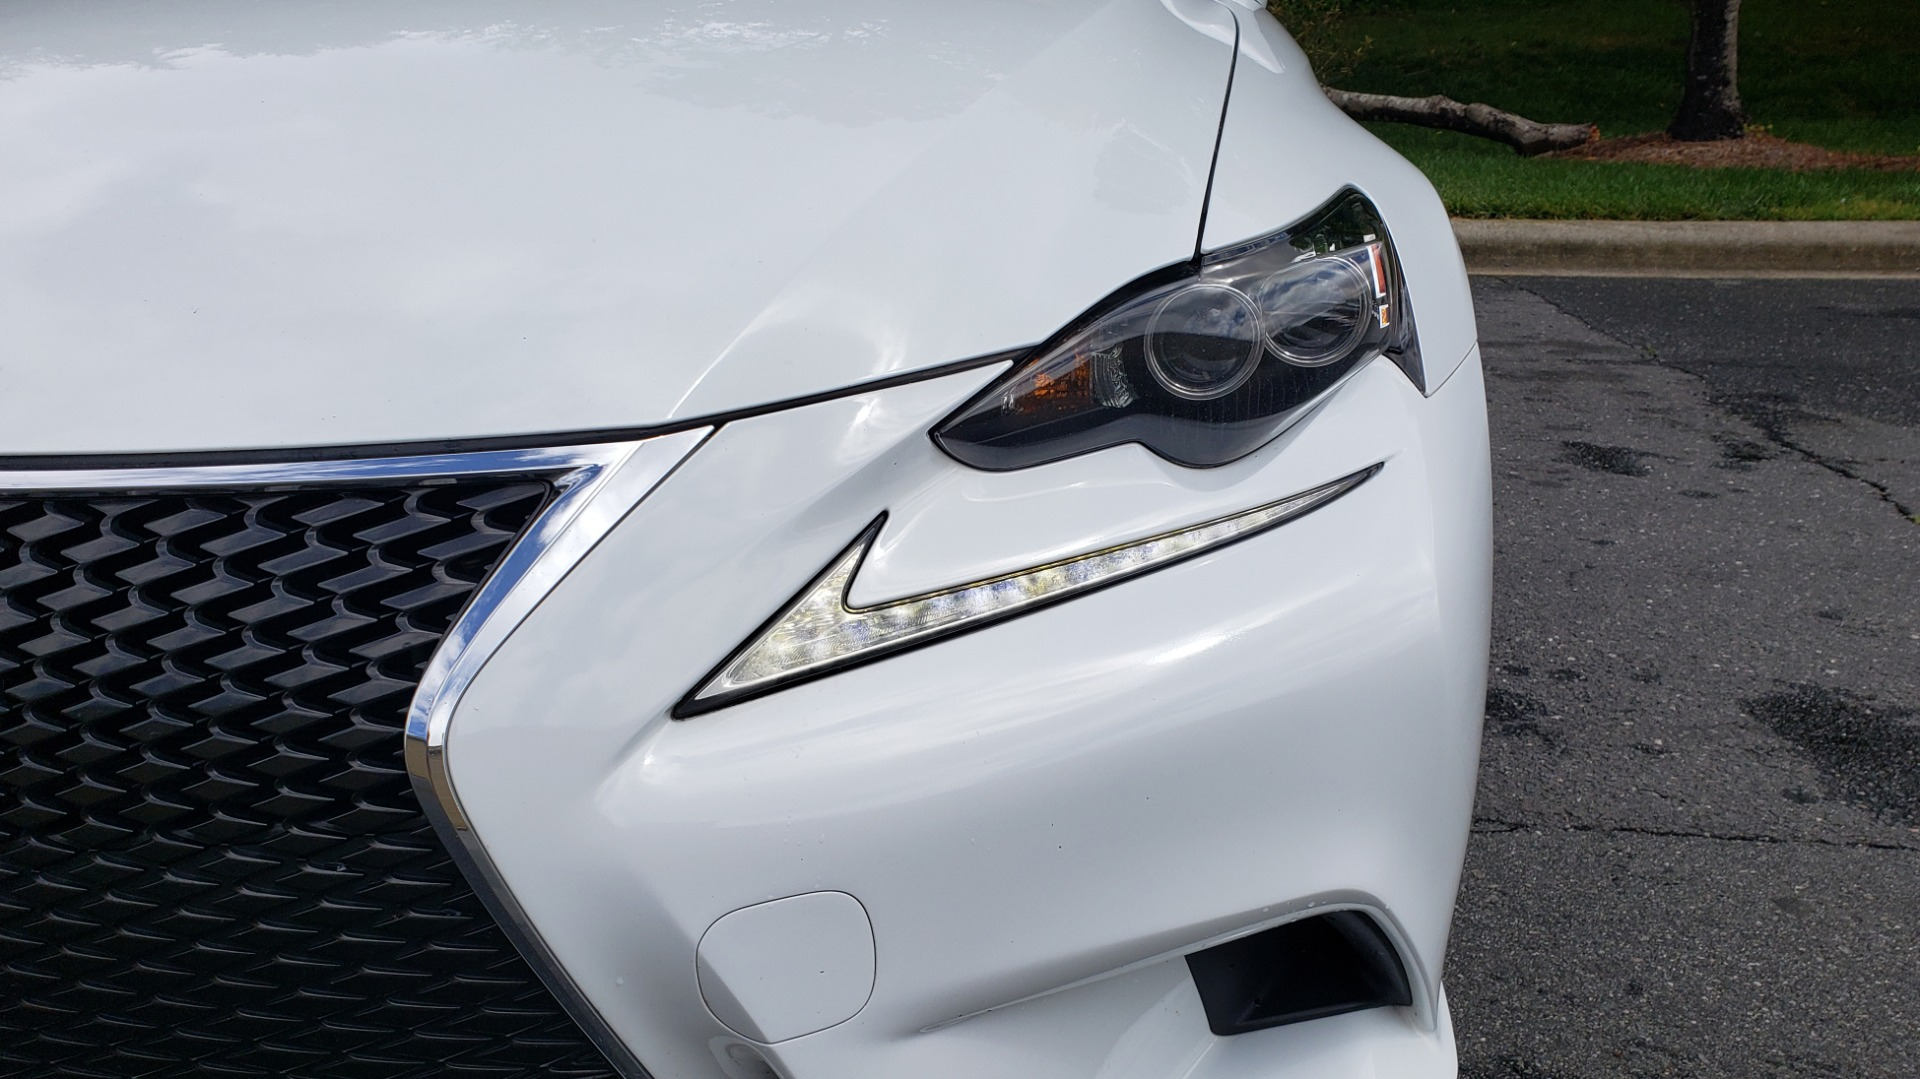 Used 2014 Lexus IS 350 F-SPORT / NAV / SUNROOF / REARVIEW / BSM / MARK LEV SND for sale Sold at Formula Imports in Charlotte NC 28227 20